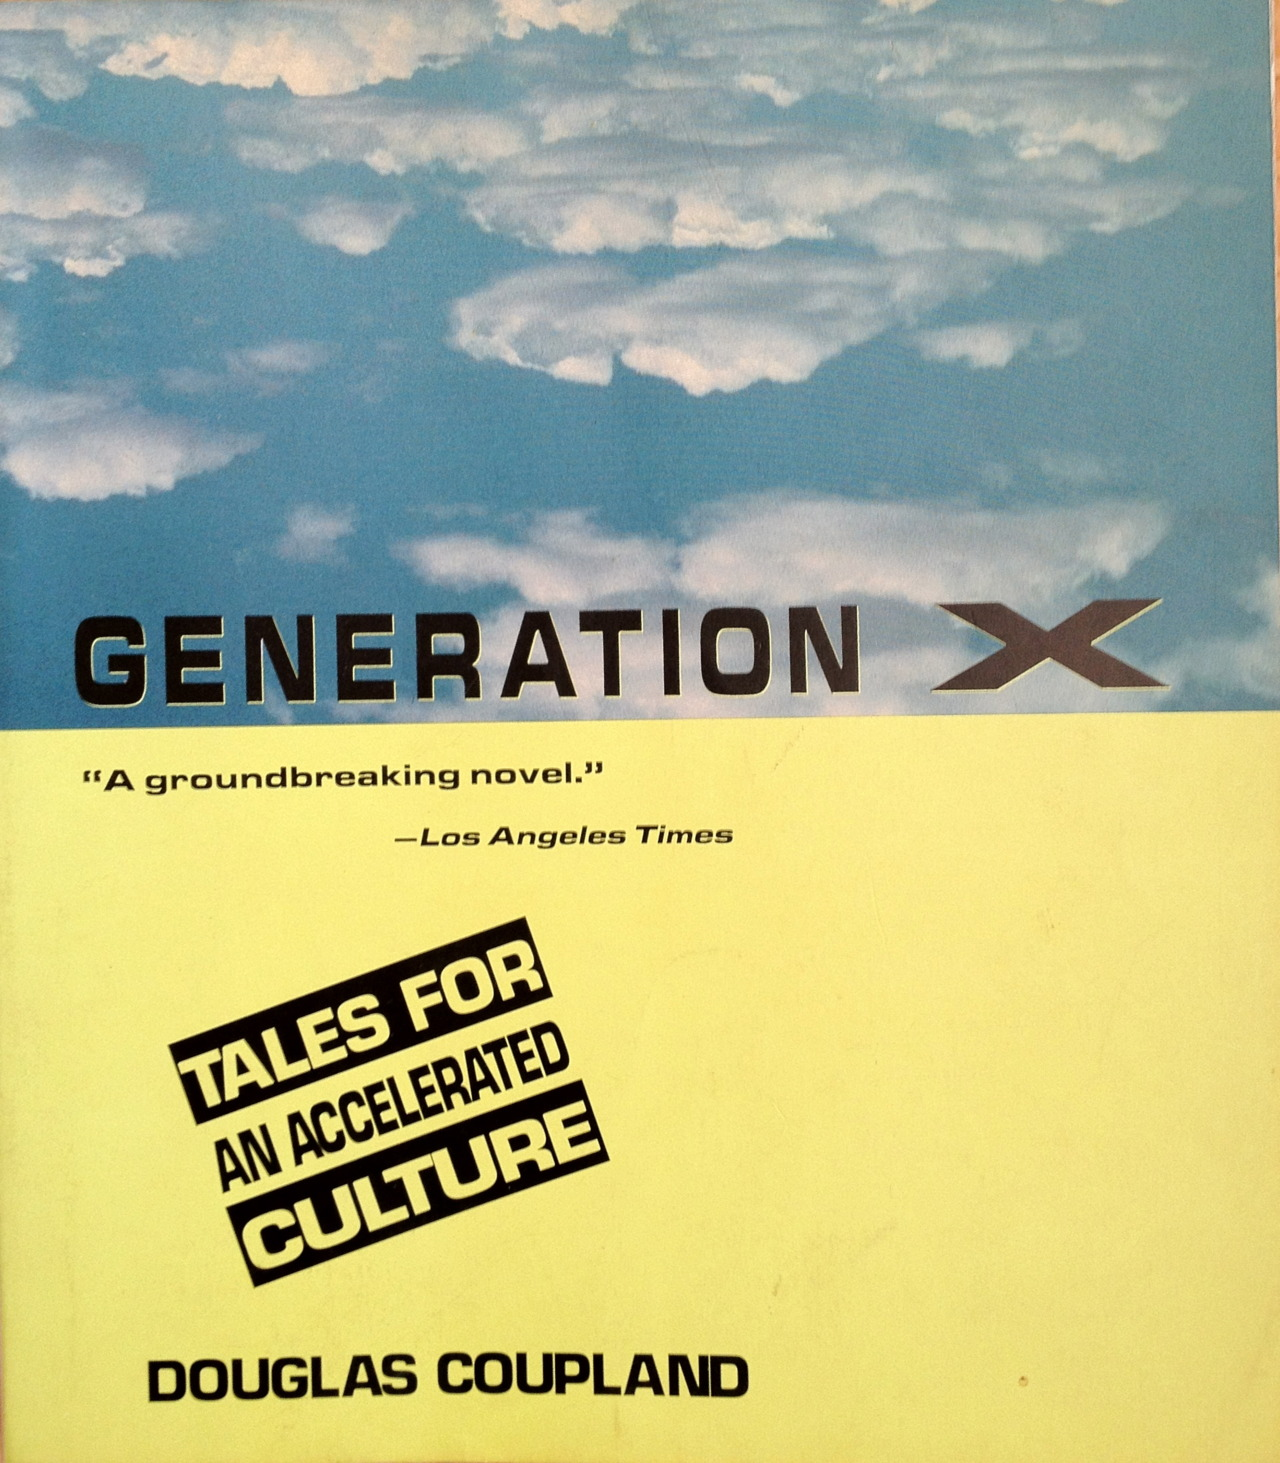 "This book was published in 1991. That means the characters, all in their 20s, were born roughly between 1960 and 1970. I've heard the term ""Gen X"" applied to people born as late as 1981, people who would have been 10 years old and of a completely different culture from the underemployed slackers who make their way through this world of Swedish disposable furniture and McJobs. But somehow the label kept getting applied to younger and younger people during the 1990s. Of course,  Douglas Coupland (born 1961)  didn't coin the term; he just popularized it. I bought this copy at St. Mark's Bookshop when I was 28 or 29 and hanging out in the East Village, visiting friends (I lived in Pennsylvania then). The book inspired a lot of bad newspaper Op-Ed columns by twentysomethings and baby boomers, as I recall, plus a terrible plague of other popular entertainments ("" Reality Bites"" ). But it did capture something about being young and broke in the 1980s. I know the so-called millennial generation (people born around the time this book was published, I guess) are finding themselves in a similar situation. Advice: hang in there.   Sample chapter headings: Our Parents Had More. Quit Recycling the Past. Quit Your Job. I Am Not a Target Market. Shopping Is Not Creating. Purchased Experiences Don't Count. Define Normal. MTV Not Bullets. Adventure Without Risk Is Disneyland.    The format of the book included marginalia definitions of various aspects of life as a 20something in the 80s/90s. The story is overshadowed by a Cold War ear fear of nuclear destruction that seems quaint now. We have so many other things to fear.   Notably missing: The Internet.    Legislated Nostalgia  To force a body of people to have memories they do not actually possess: ""How can I be part of the 1960s generation when I don't even remember any of it?""      [Originally posted on my discontinued This Old Book Tumblr.]"